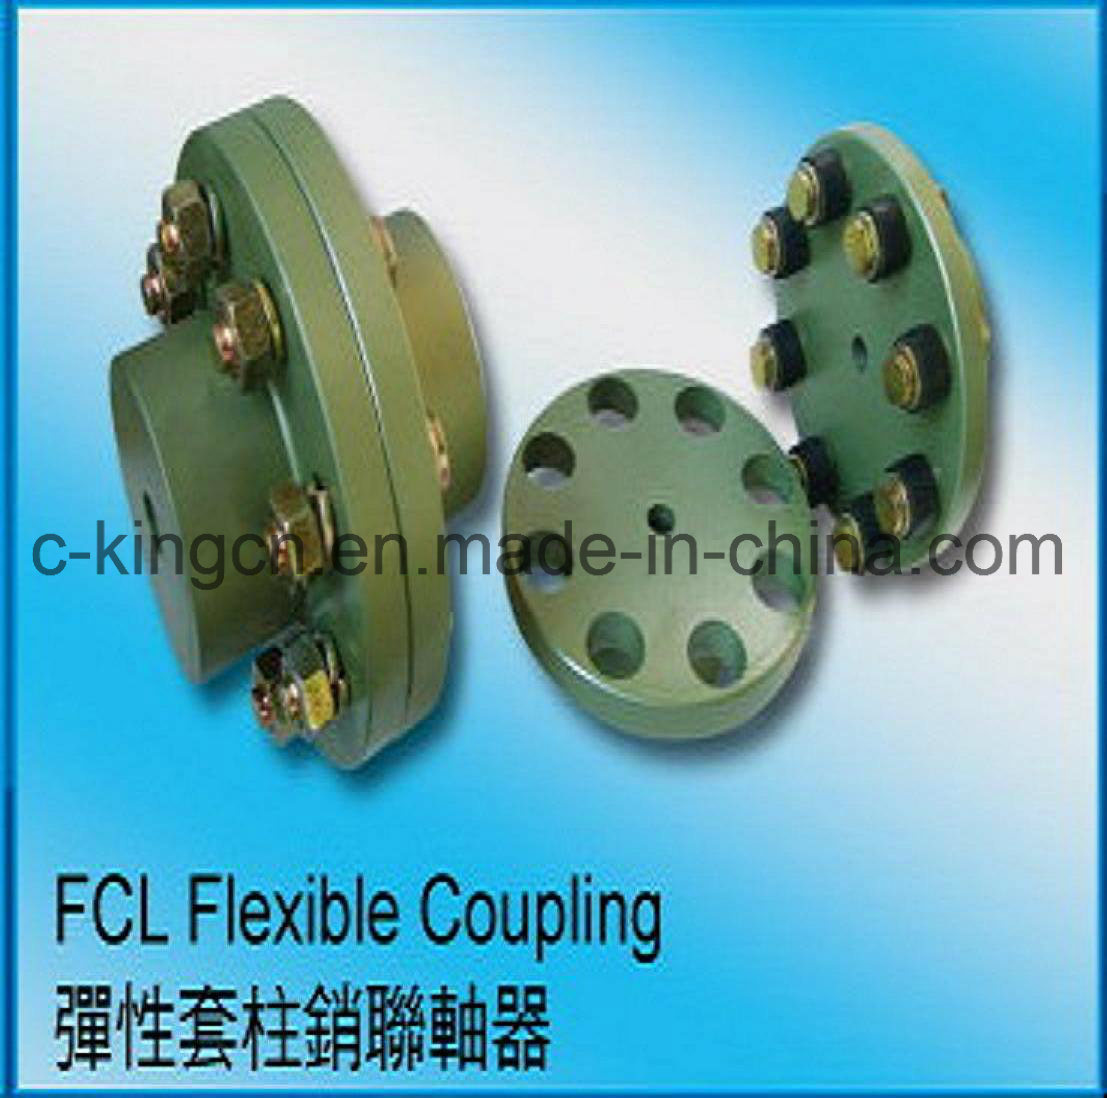 C-King Cast Iron Pin Bush FCL Flexible Coupling